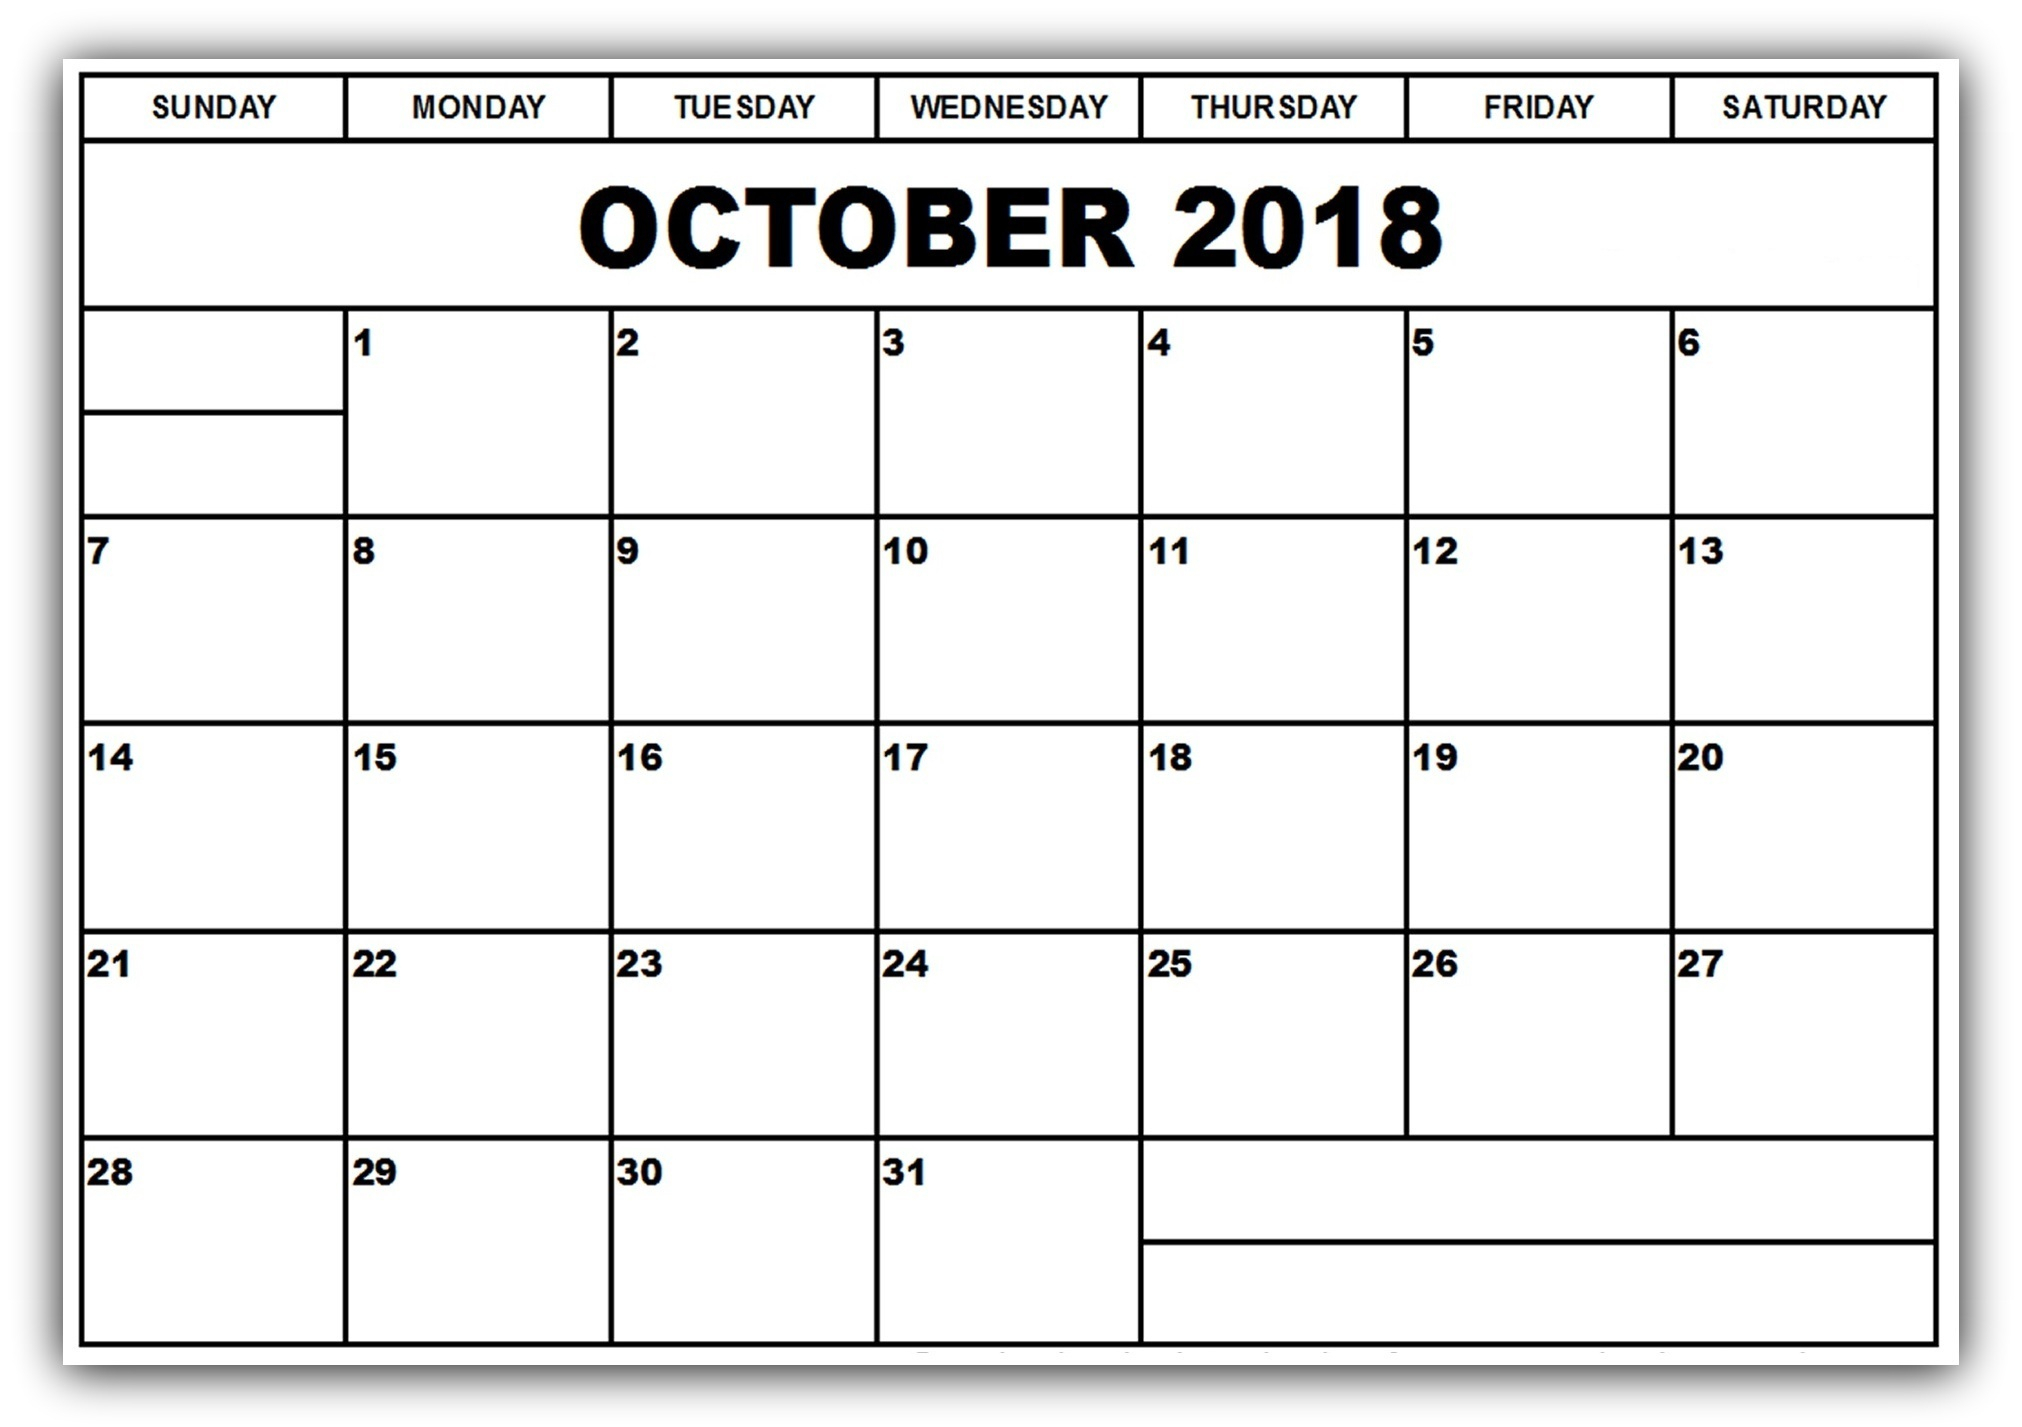 October 2018 Calendar Template For Pages - Free Printable Calendar throughout October Calendar Printable Template